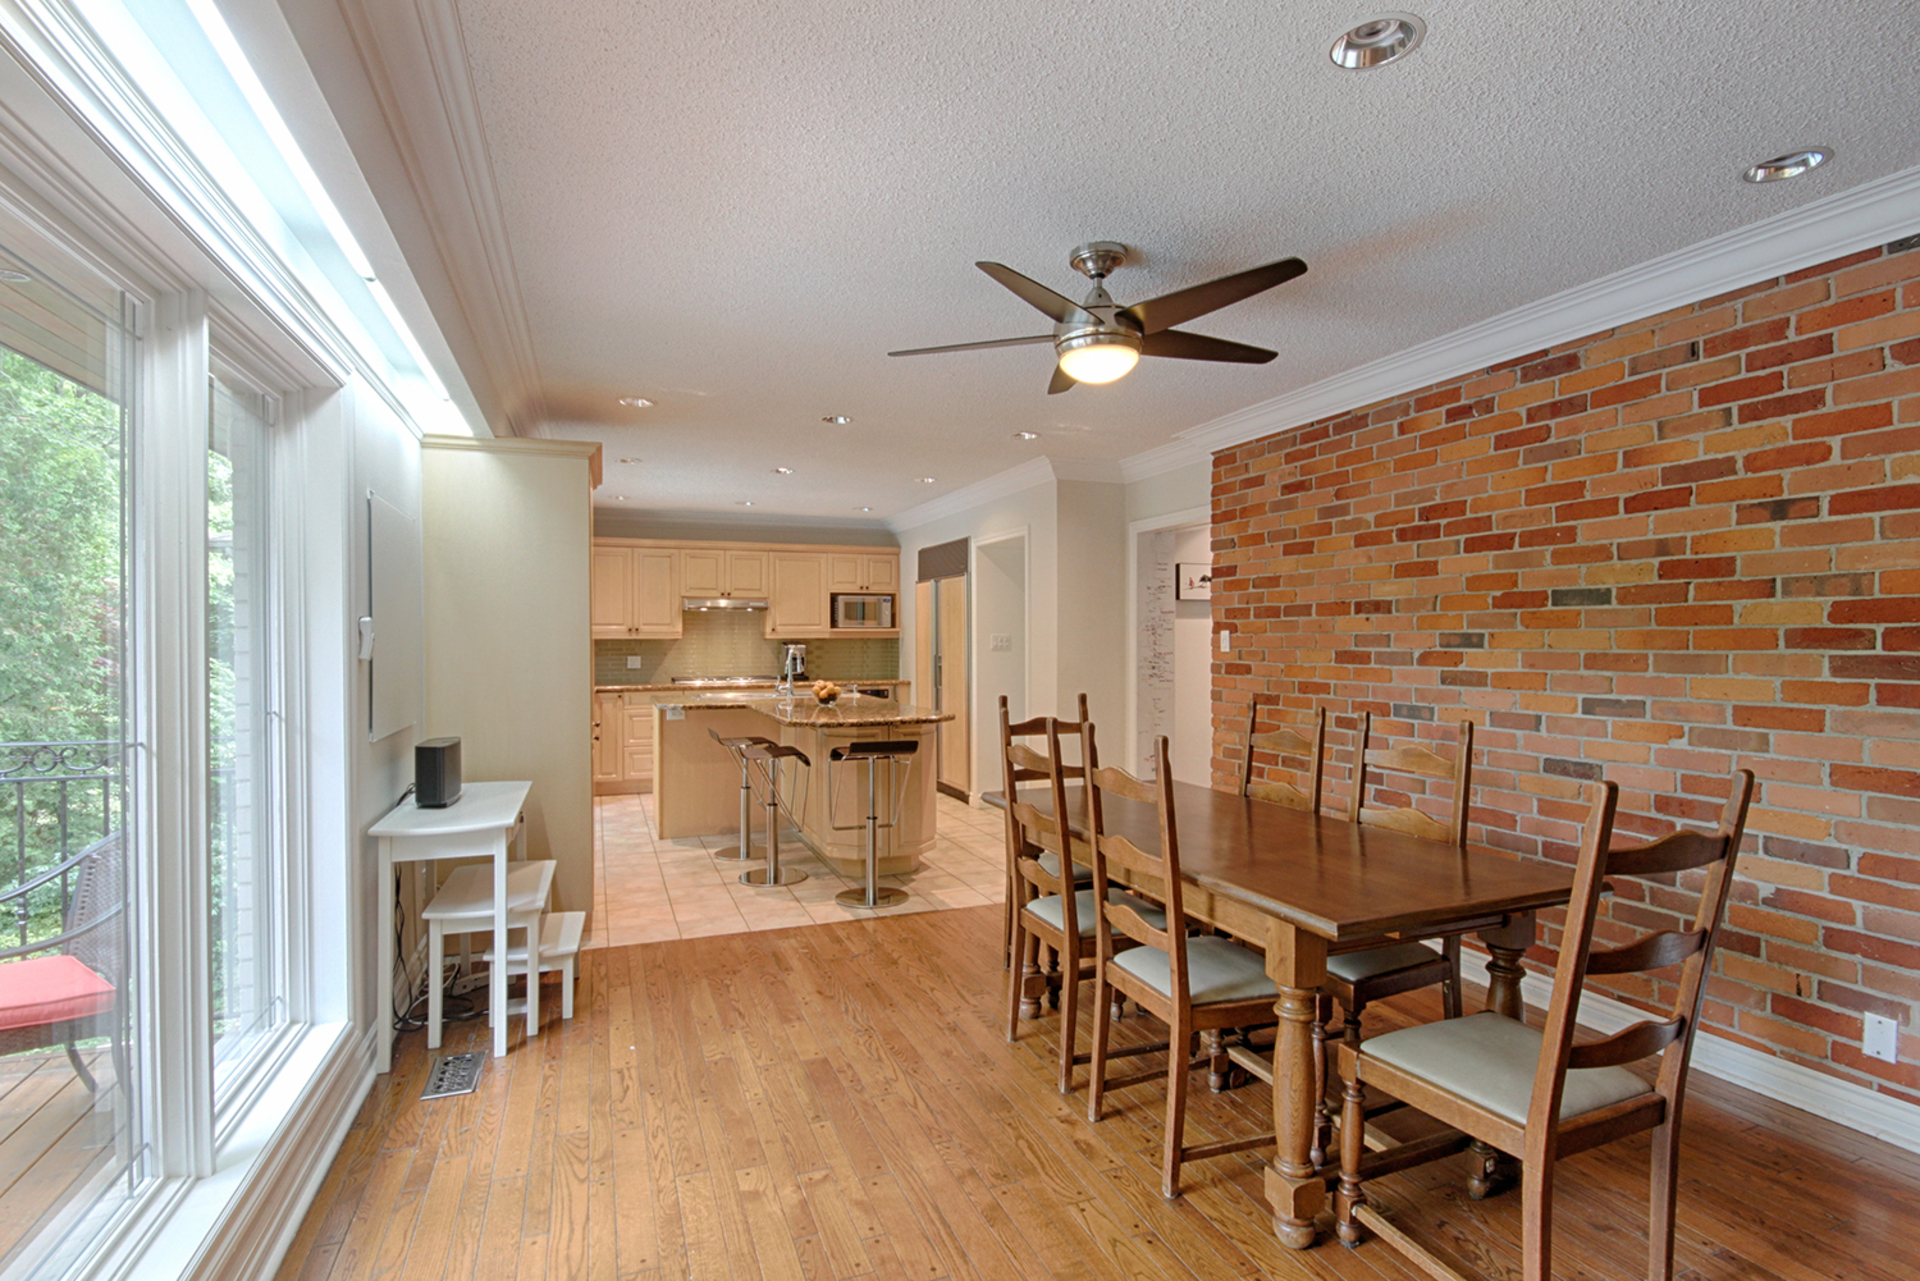 Breakfast Room at 15 Brushwood Court, Parkwoods-Donalda, Toronto